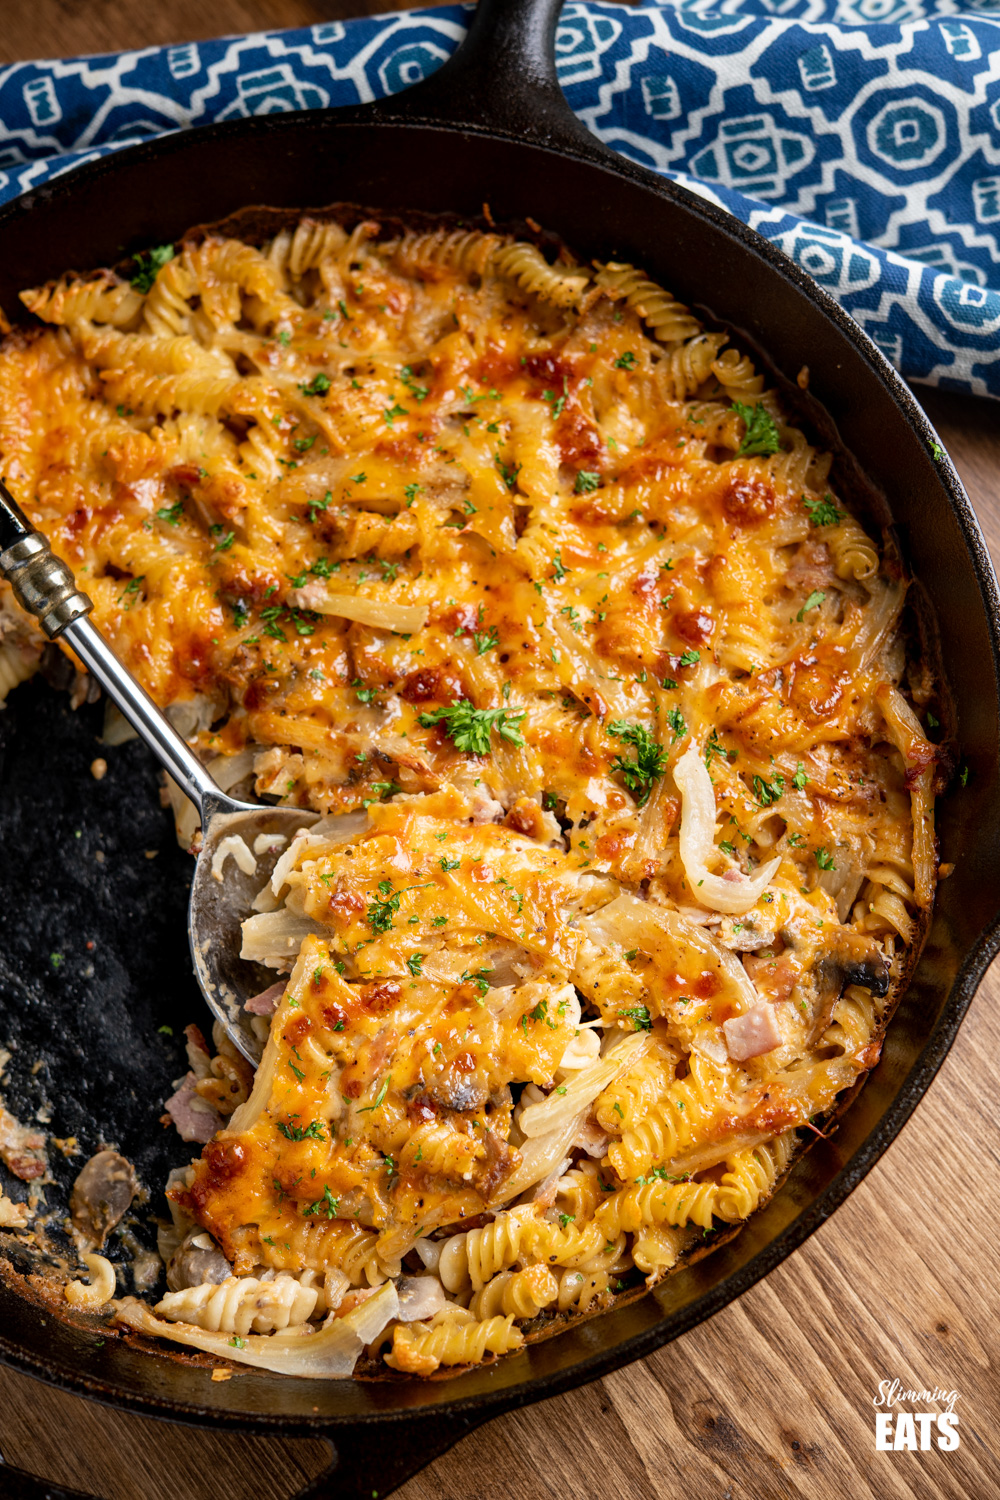 Bacon, Fennel and Mushroom Pasta Bake in a cast iron skillet on wooden board